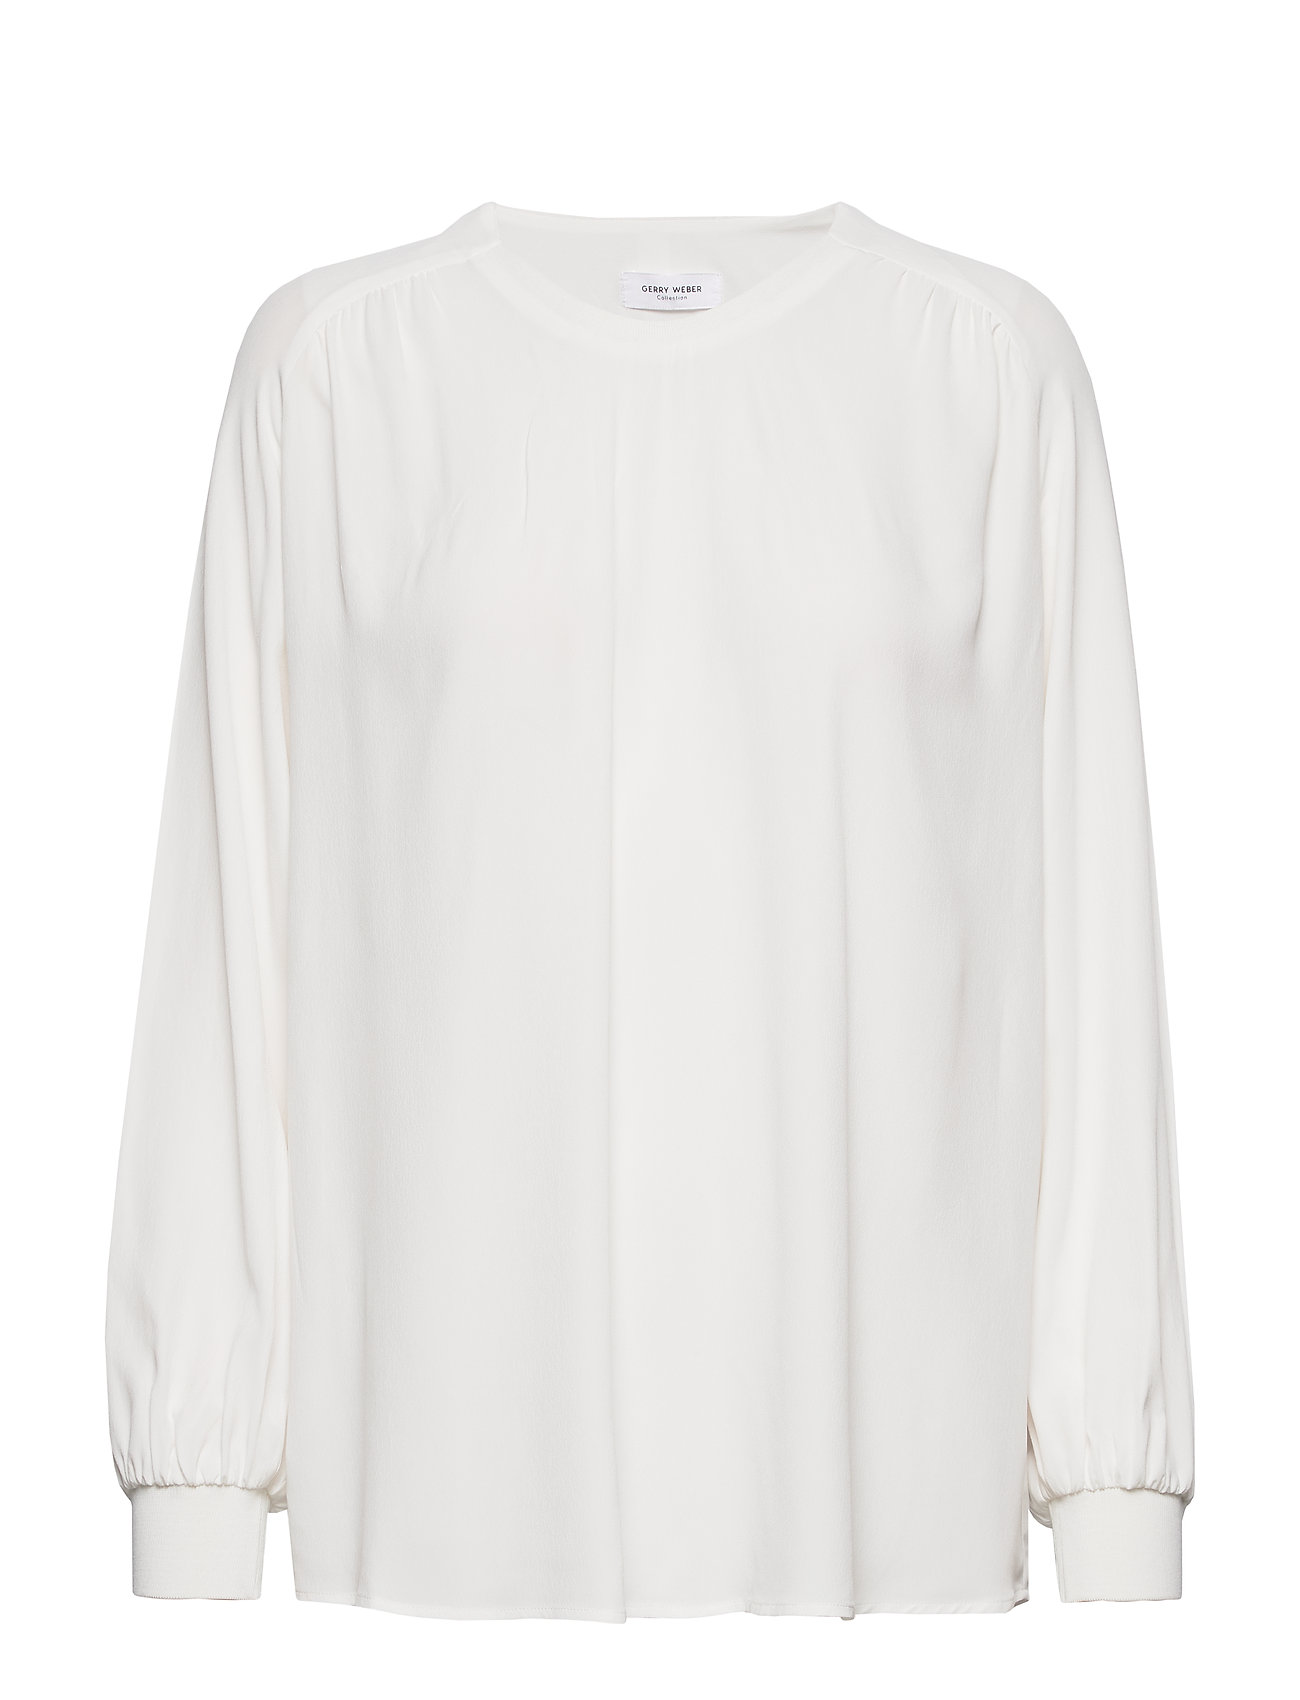 Gerry Weber BLOUSE LONG-SLEEVE - OFF-WHITE